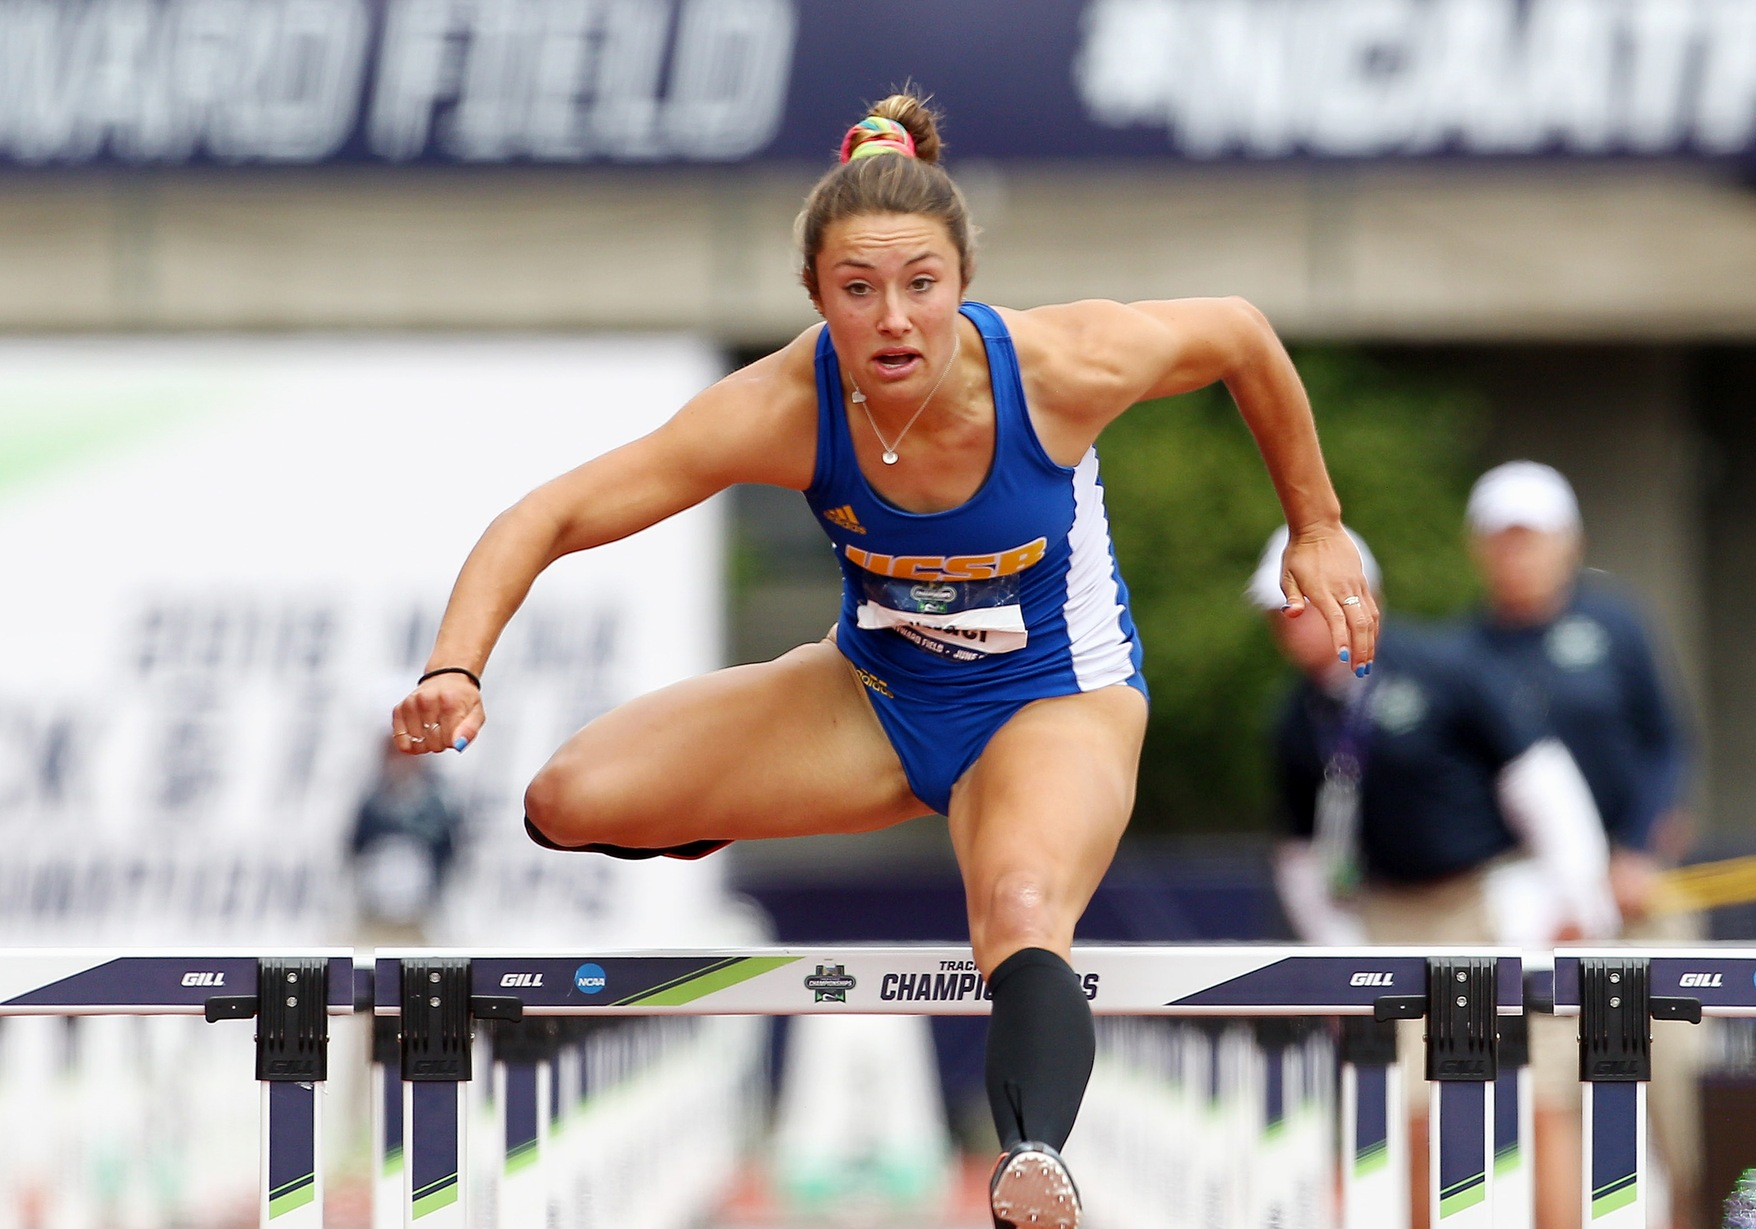 Bender Sixth at Indoor Nationals in Pentathlon, Makes First-Team All-American Status